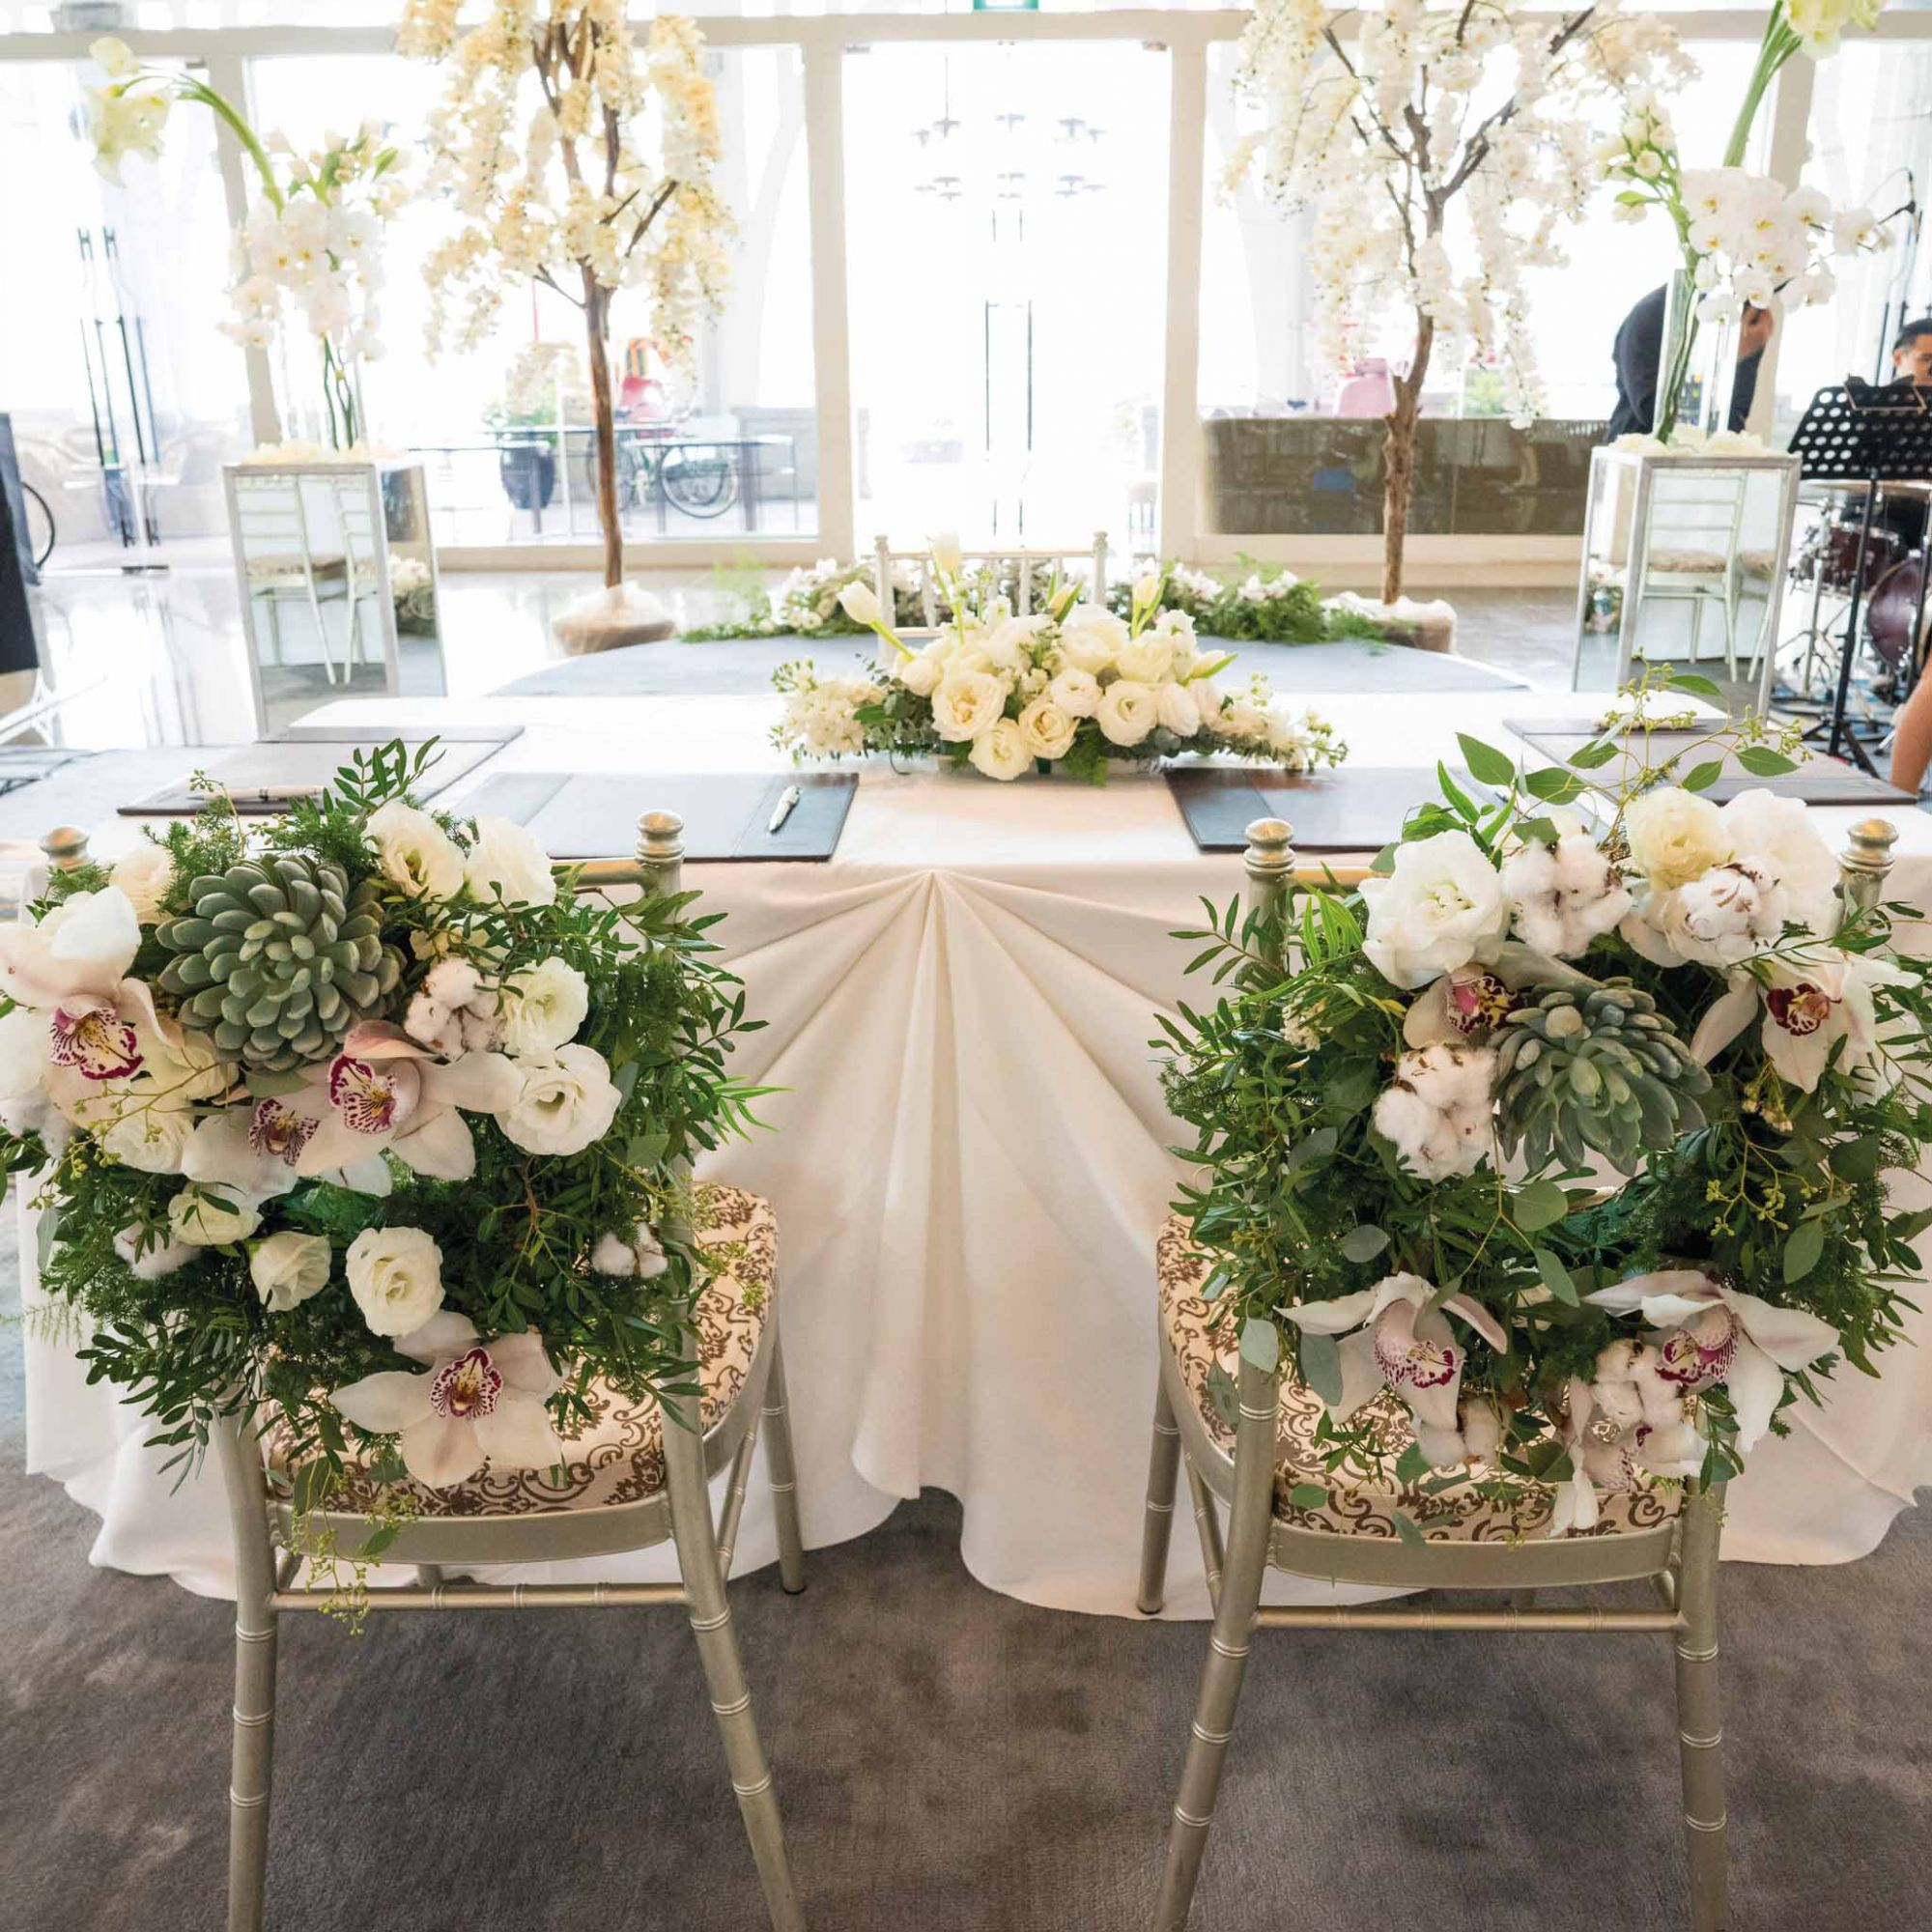 Ask The Expert: How Do I Minimise Wastage At My Wedding?